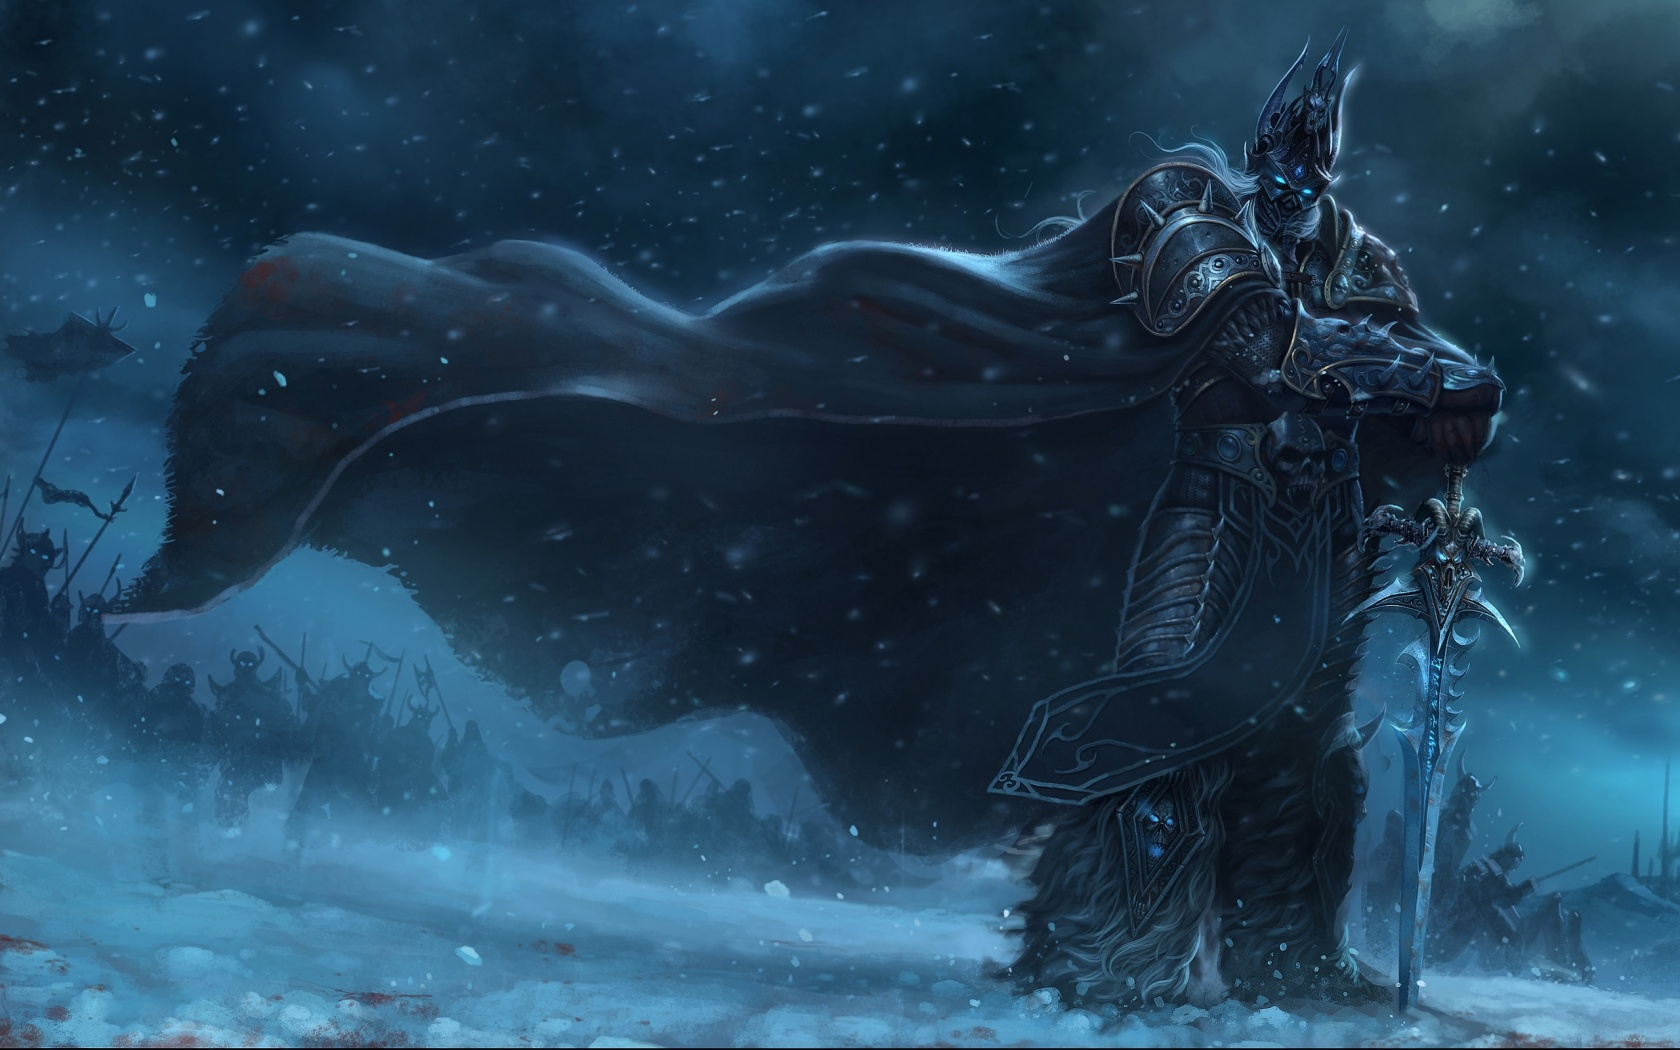 Description: The Wallpaper above is Lich king wow Wallpaper in Resolution 1680x1050. Choose your Resolution and Download Lich king wow Wallpaper